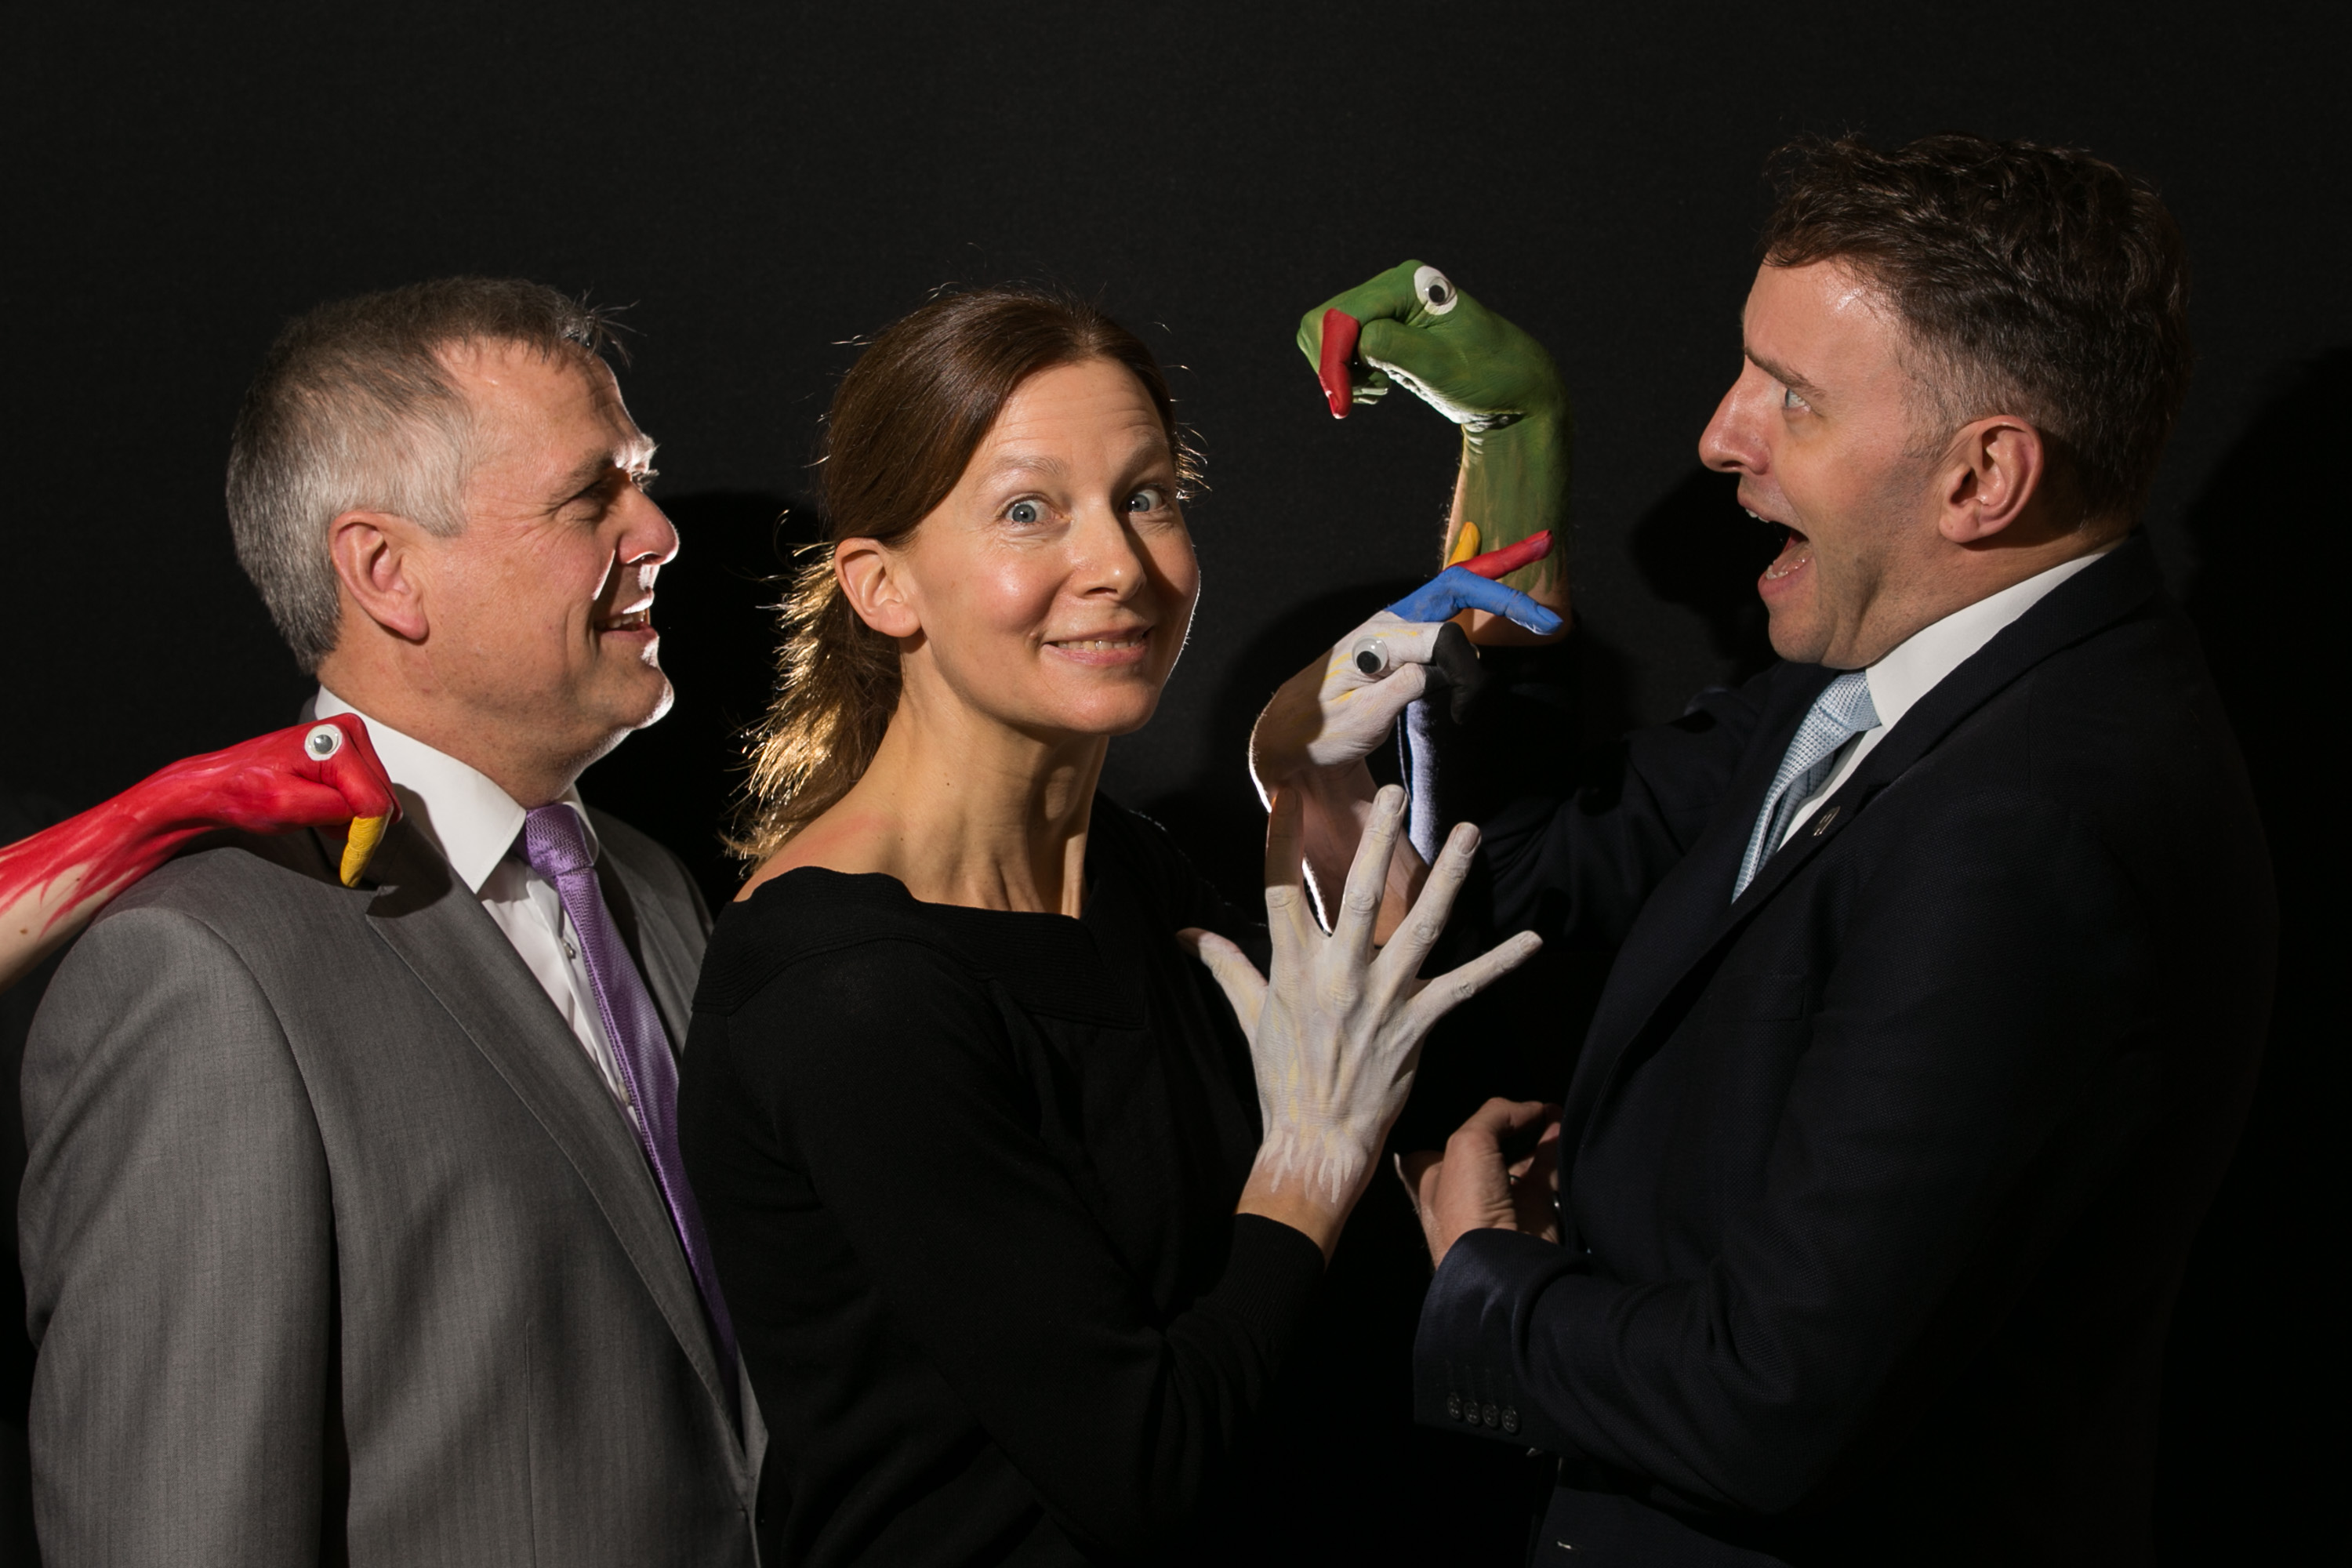 Sean McGrath, CEO, Allianz Ireland, Helene Hugel, Artistic Director, Helium Arts & Andrew Hetherington, CEO, Business to Arts at the launch of the 2017 Allianz Business to Arts Awards. Picture by Shane O'Neill Photography